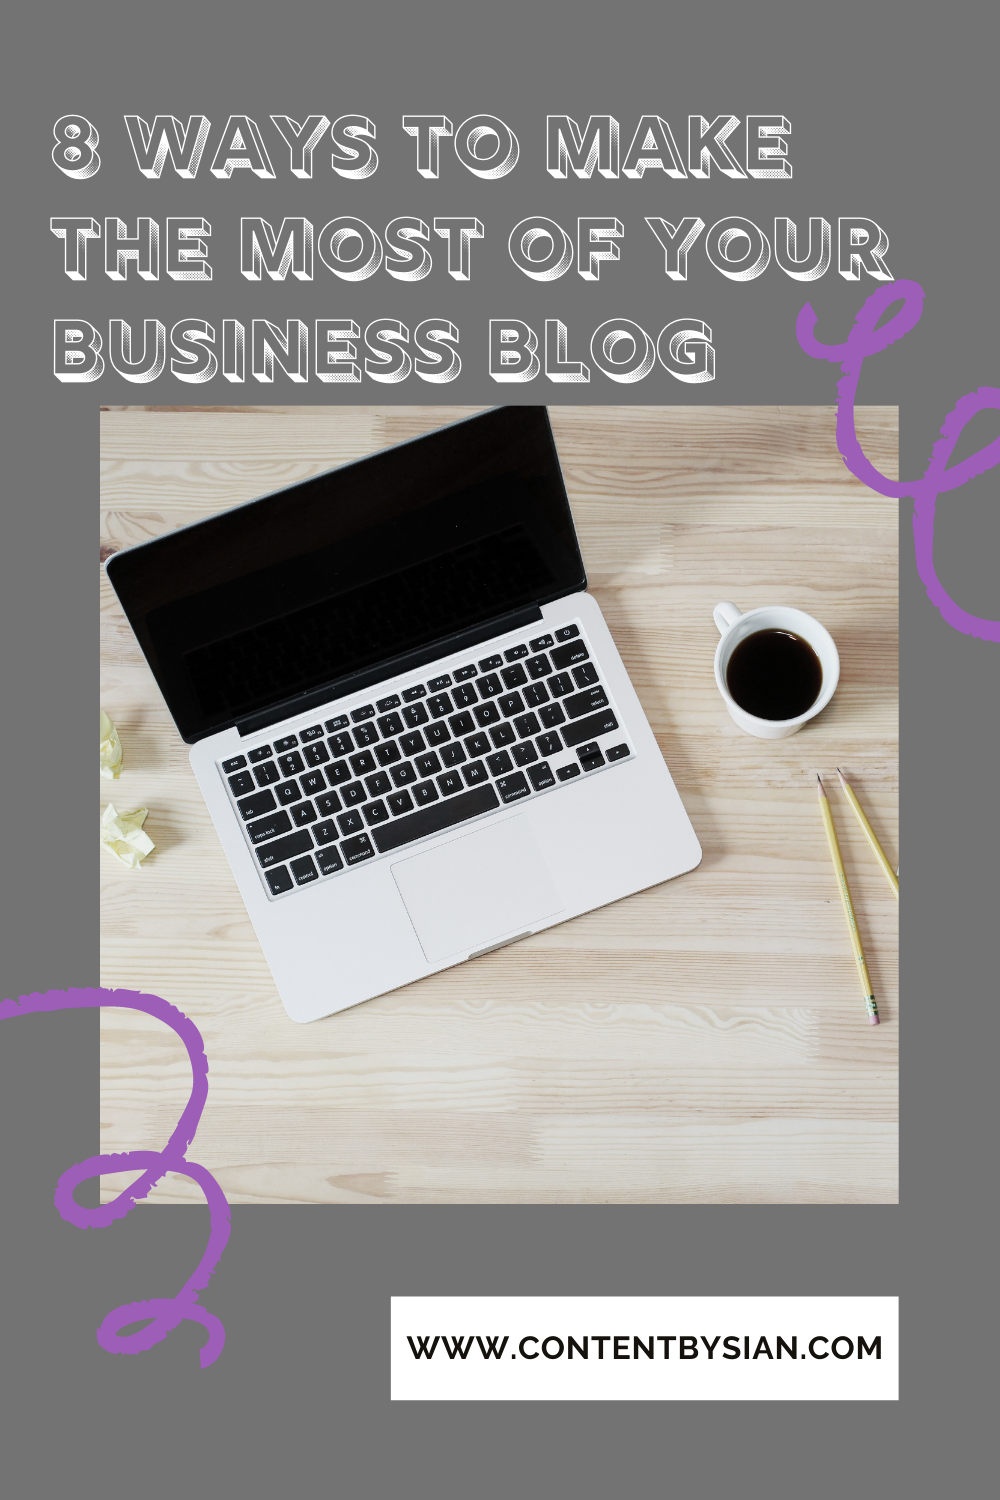 8-ways-to-make-the-most-of-your-business-blog-pinterest